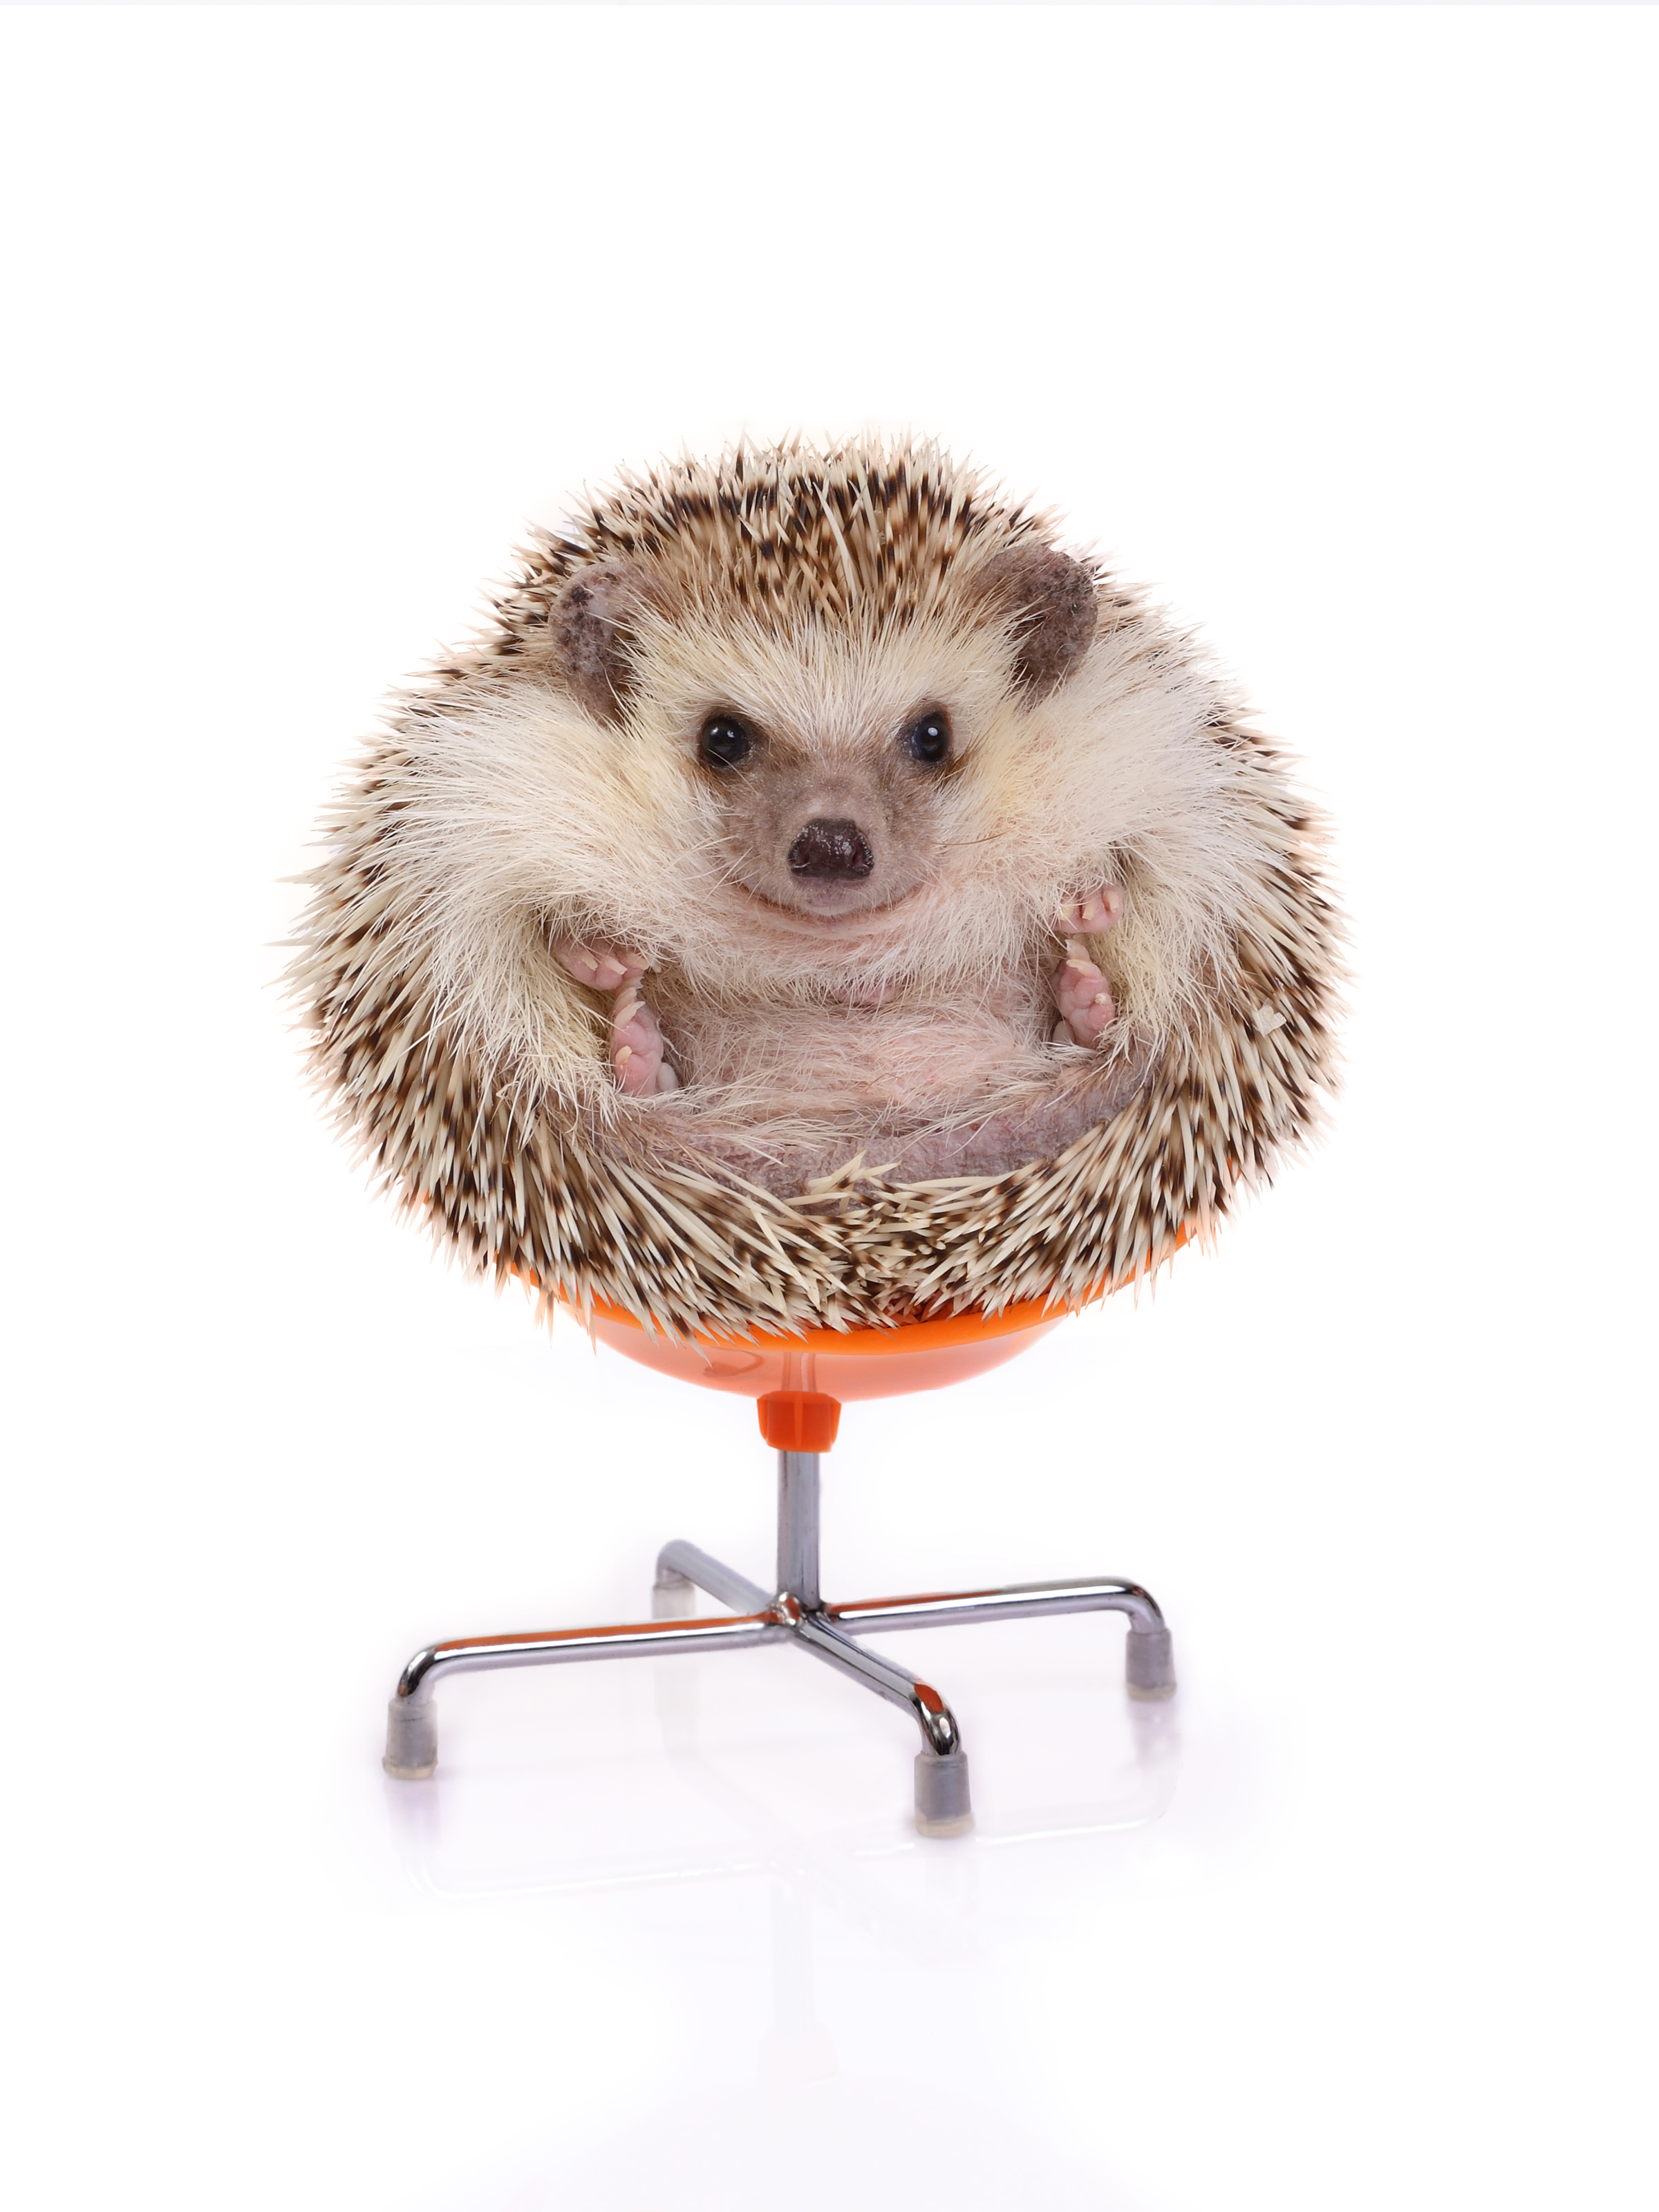 A cute hedgehog on a chair